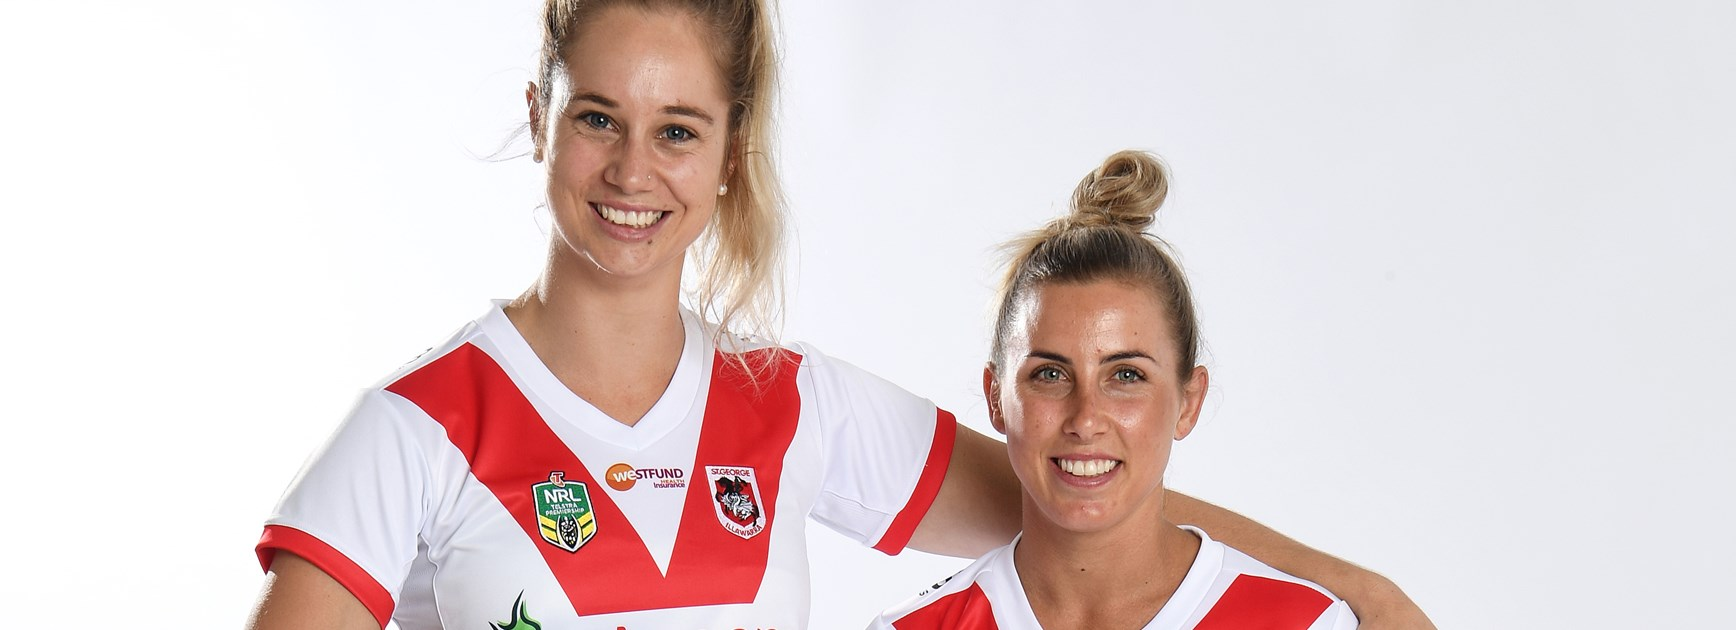 Jillaroos players Kezzie Apps and Sam Bremner